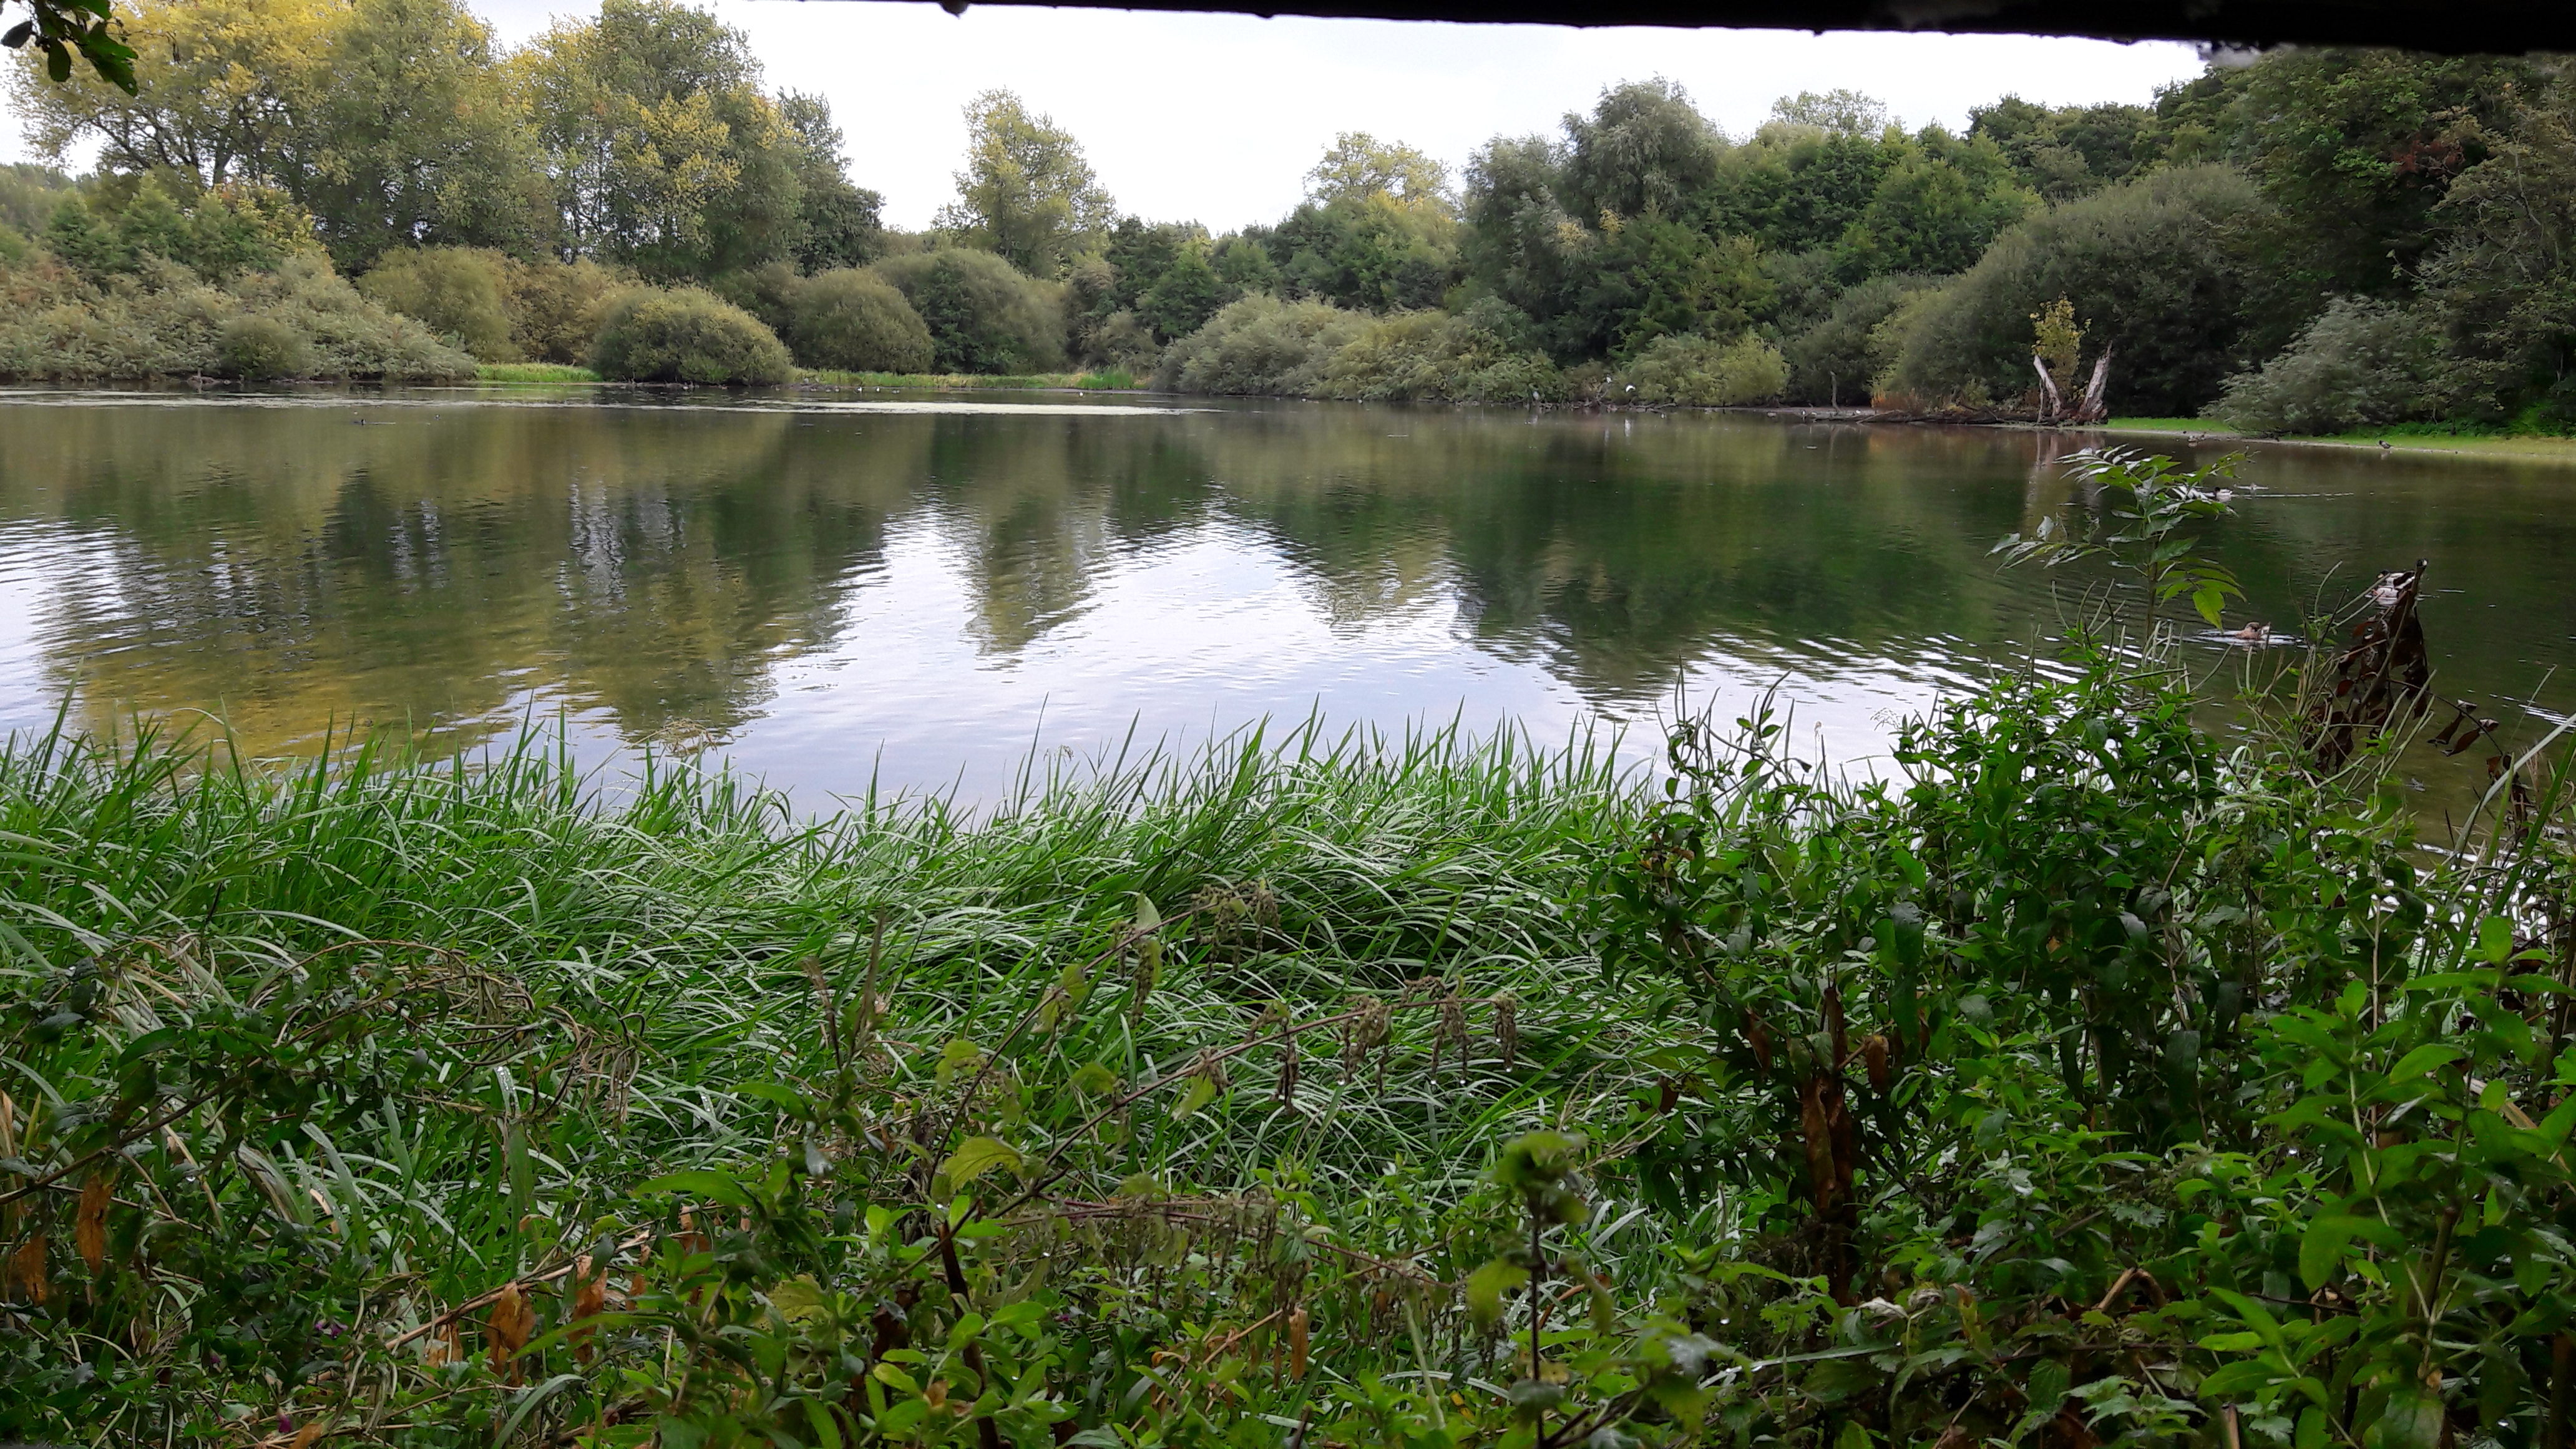 Tring Park & the Grand Union Canal